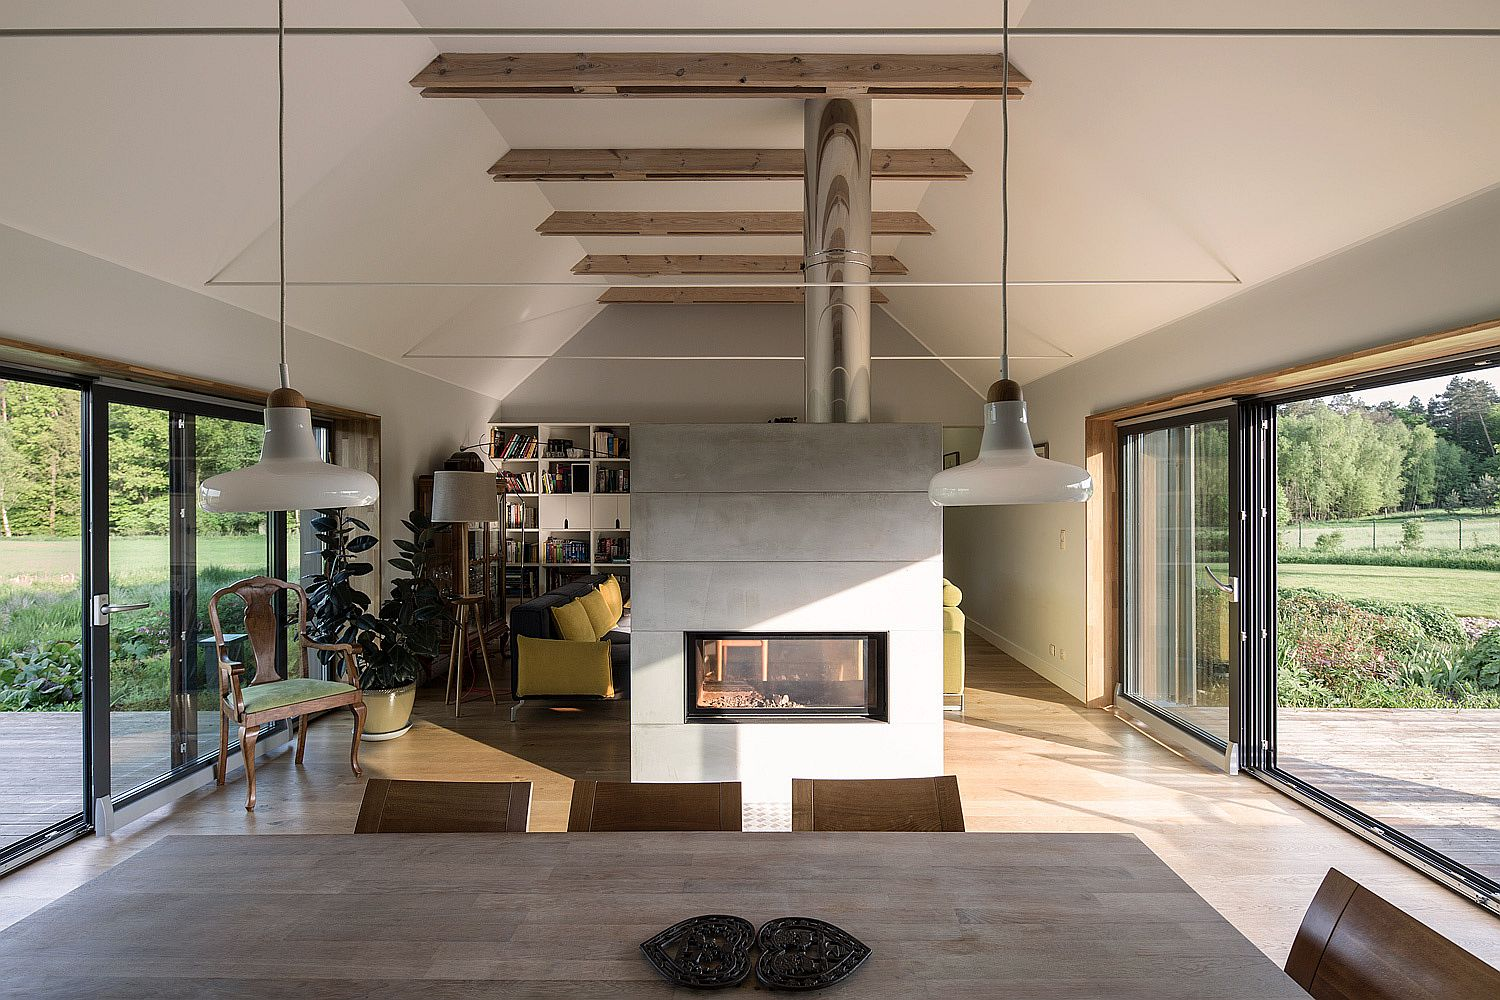 Fireplace-delineates-the-living-room-from-the-kitchen-and-dining